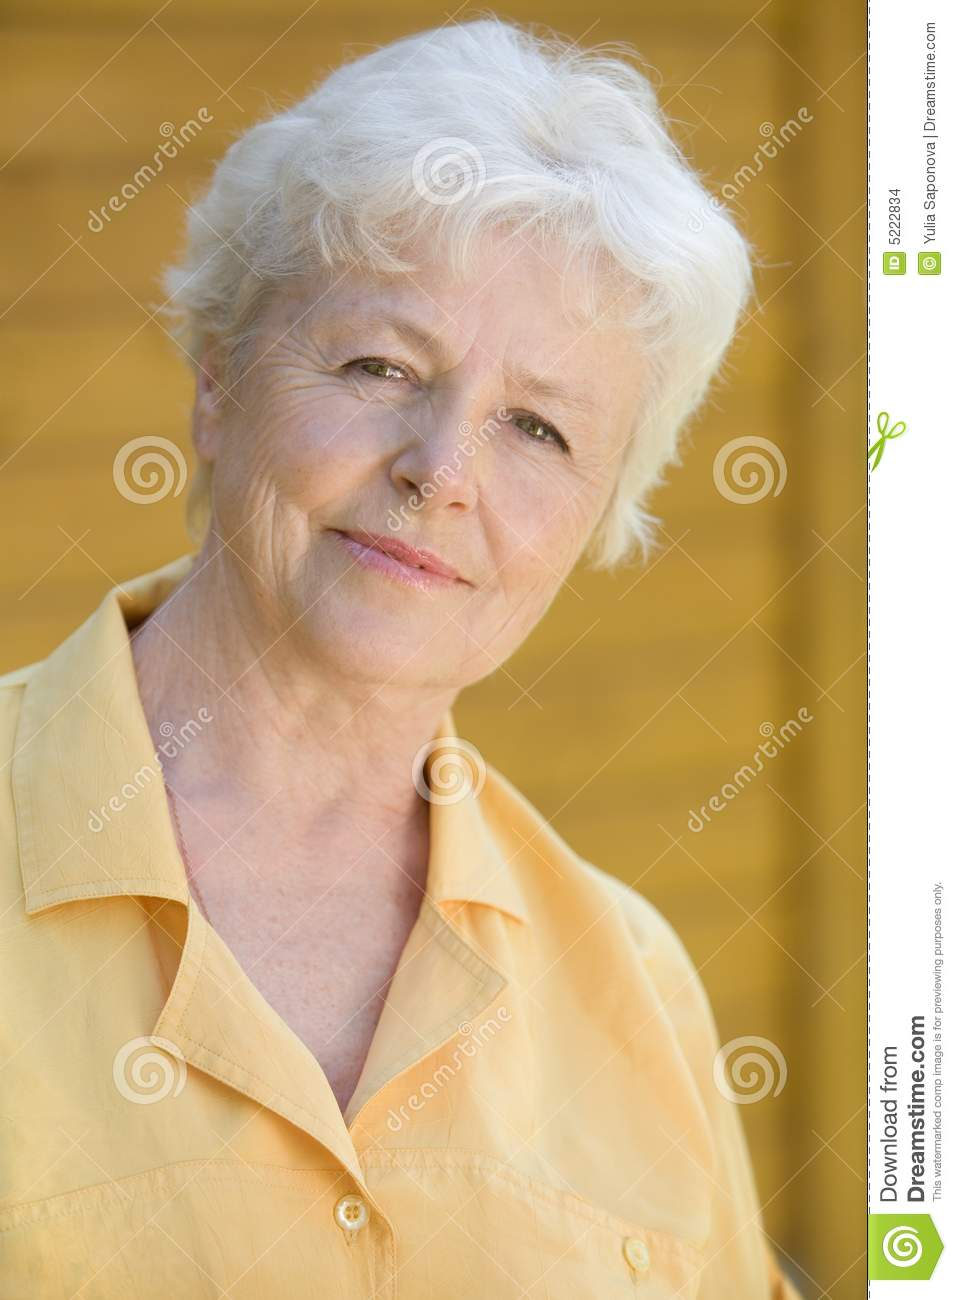 Portrait Of The Elderly Woman Stock Images - Image: 5222834